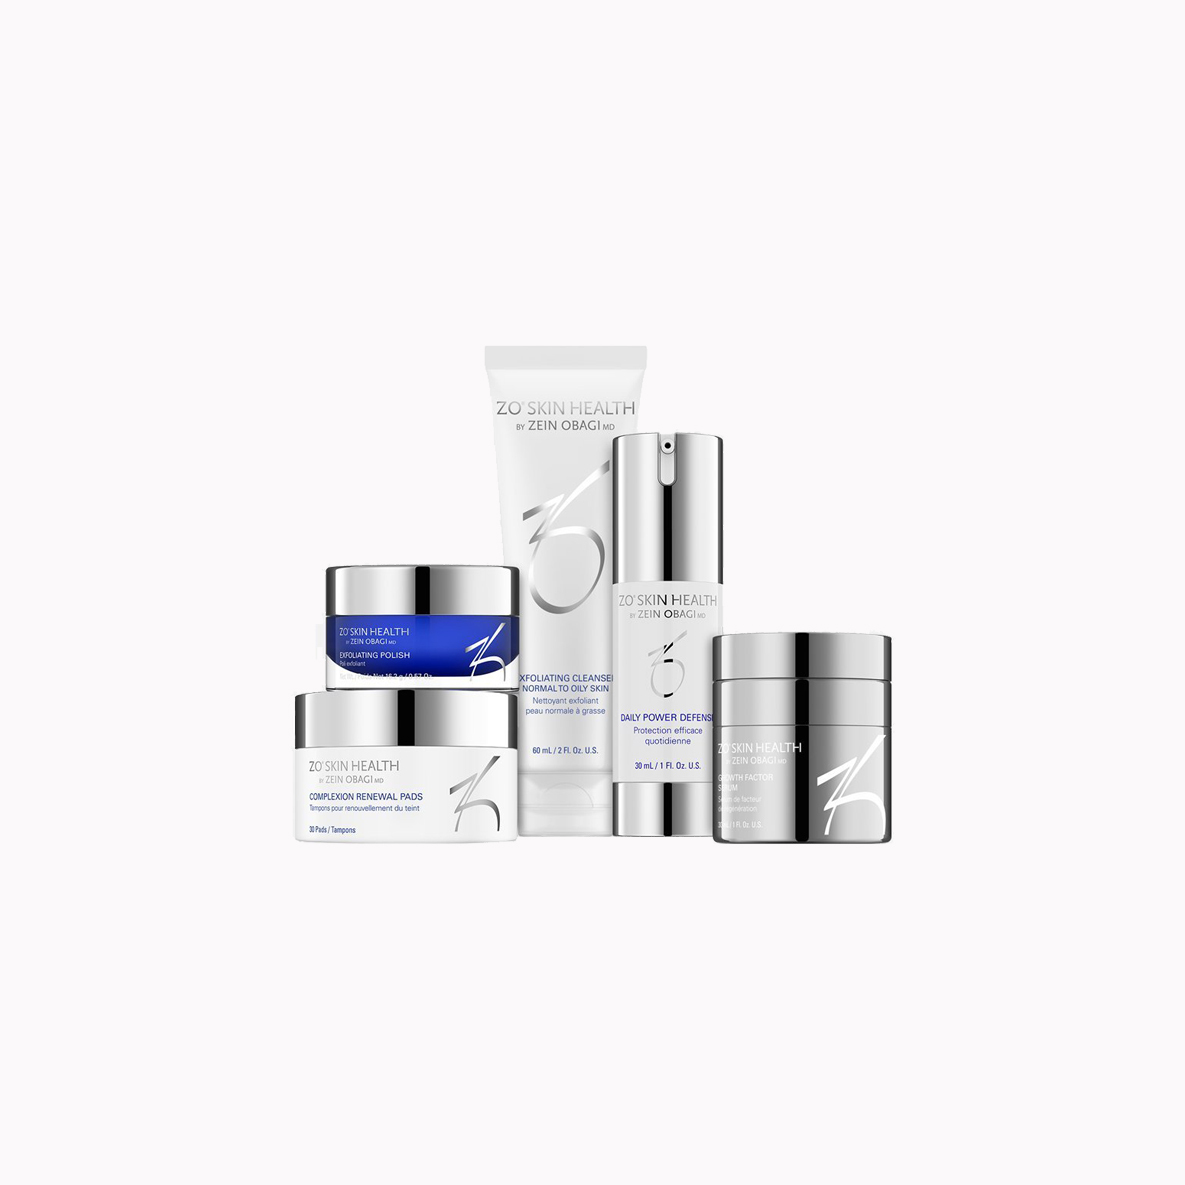 Dermanet.no - ZO Skin Health Anti-aging Program